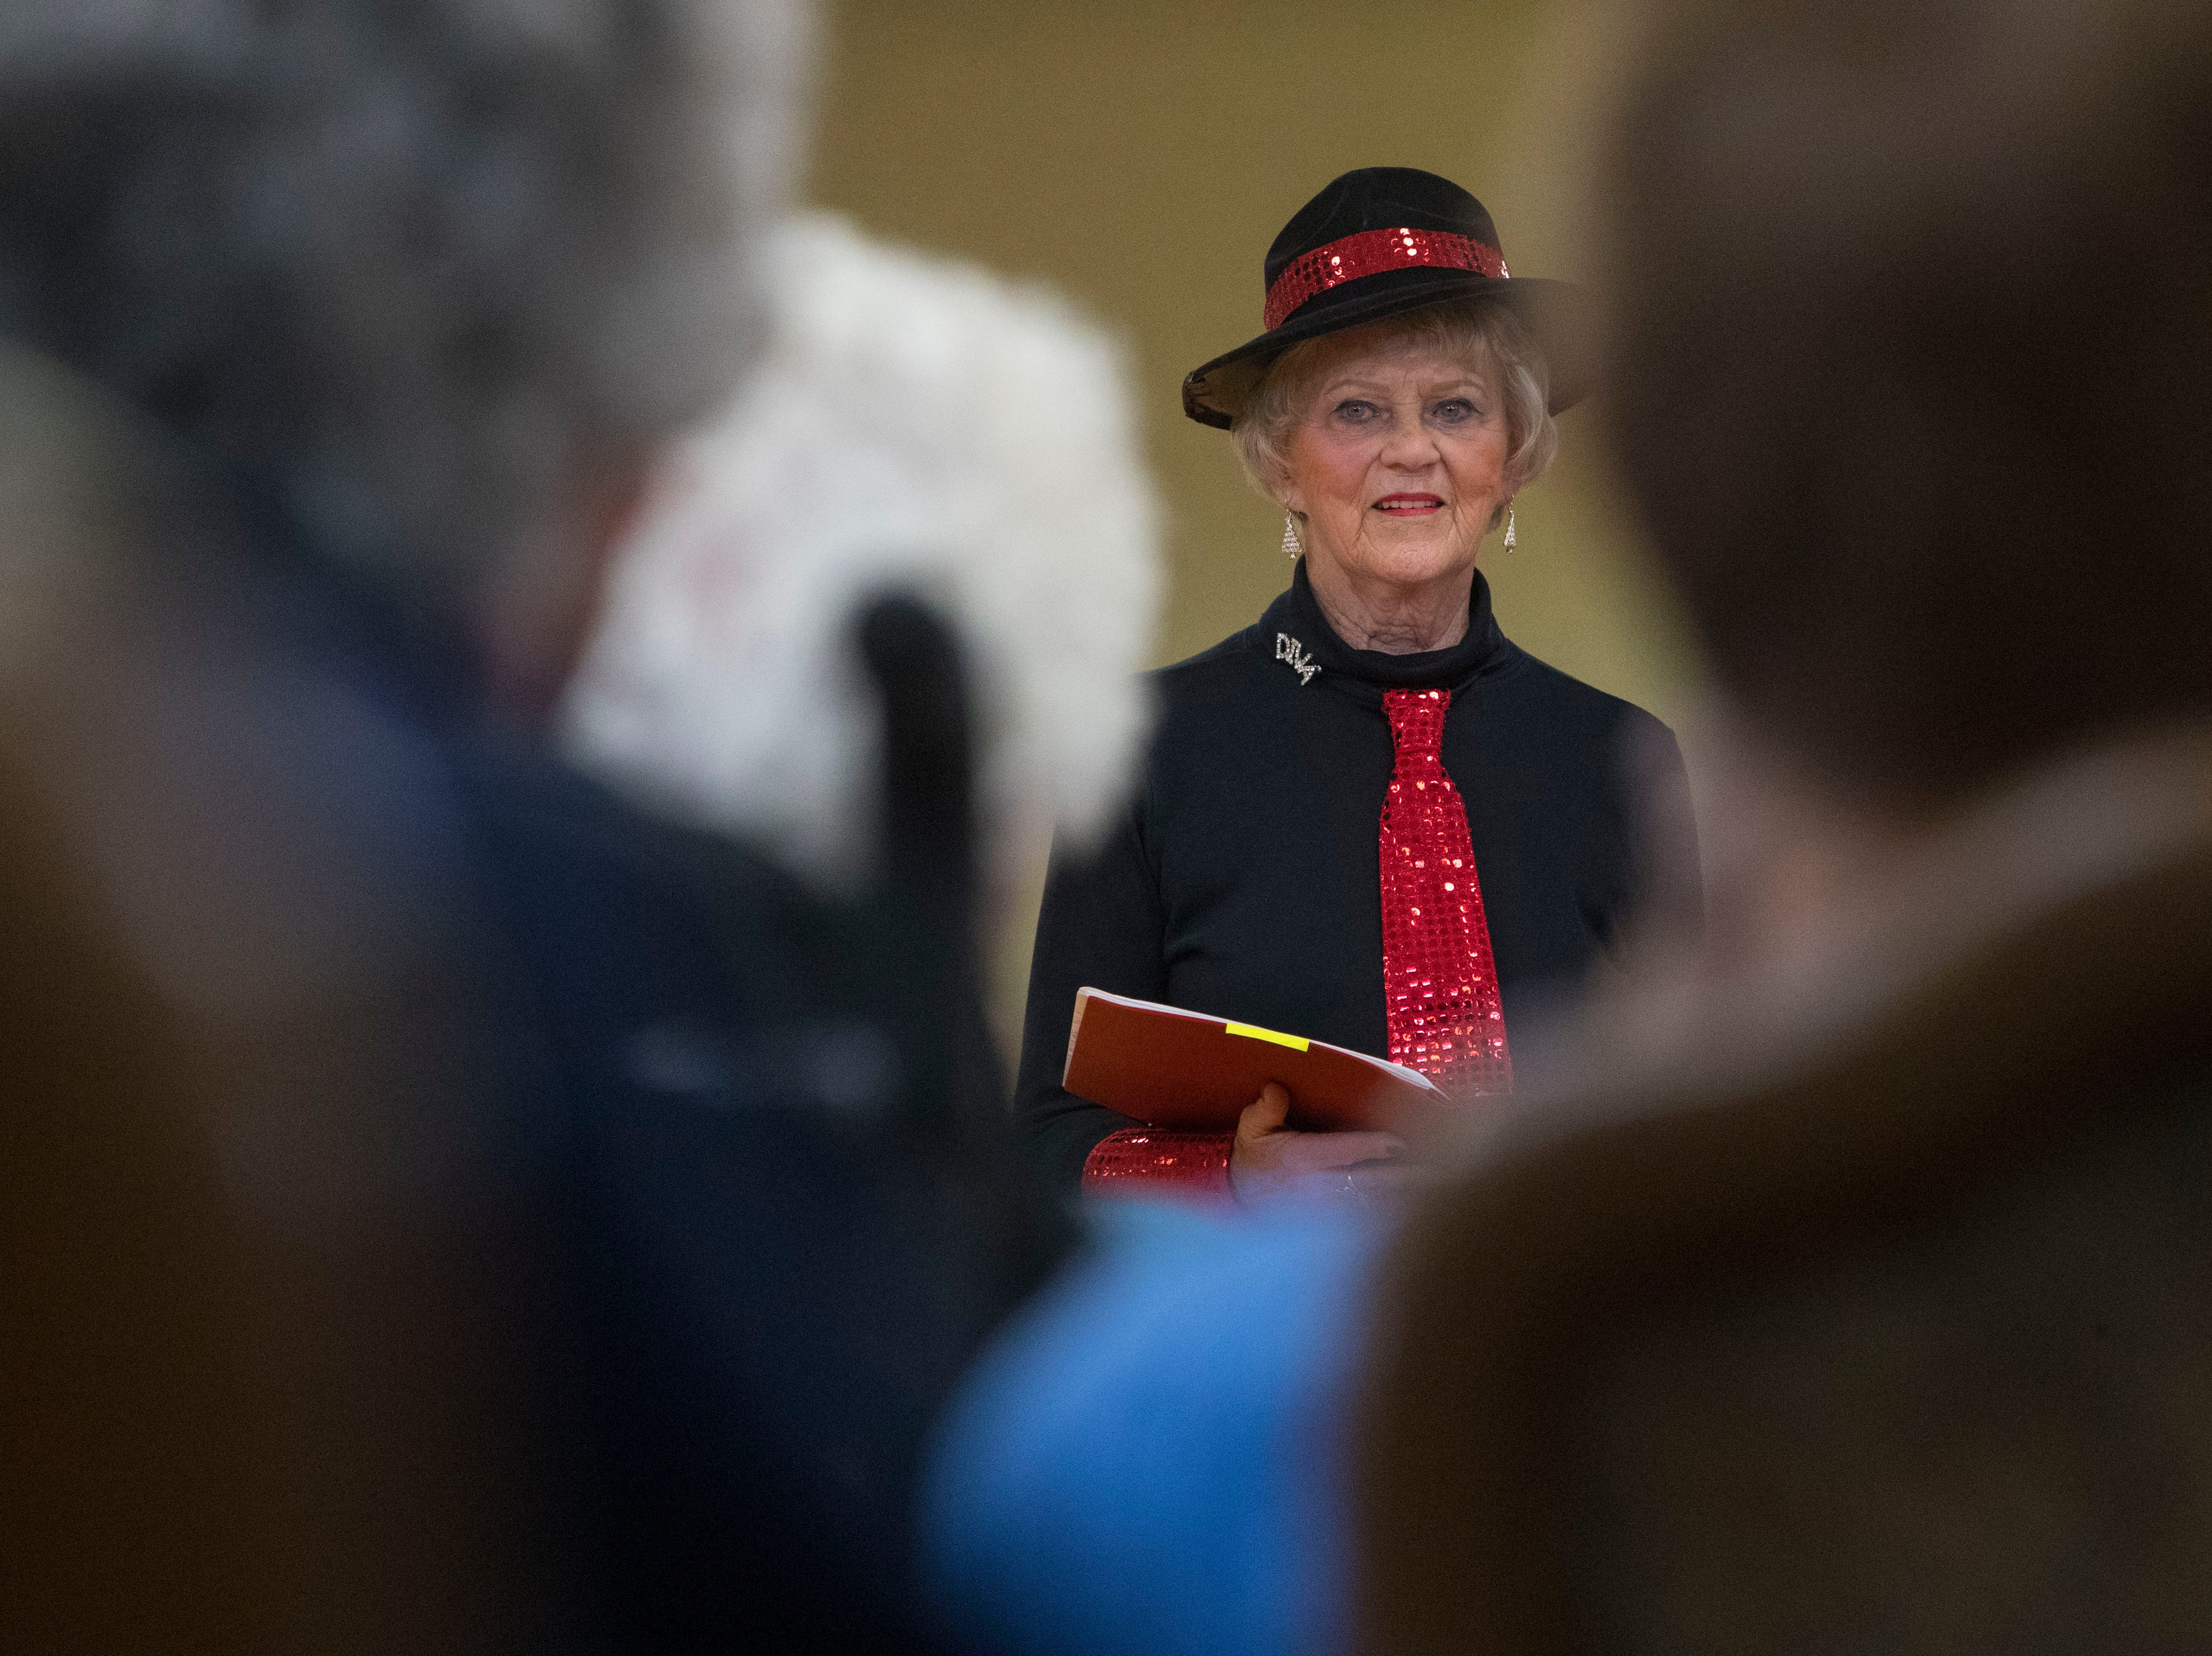 Joan Hall performs at Good Samaritan Society-Luther Manor in Sioux Falls, S.D., Friday, Dec. 14, 2018.